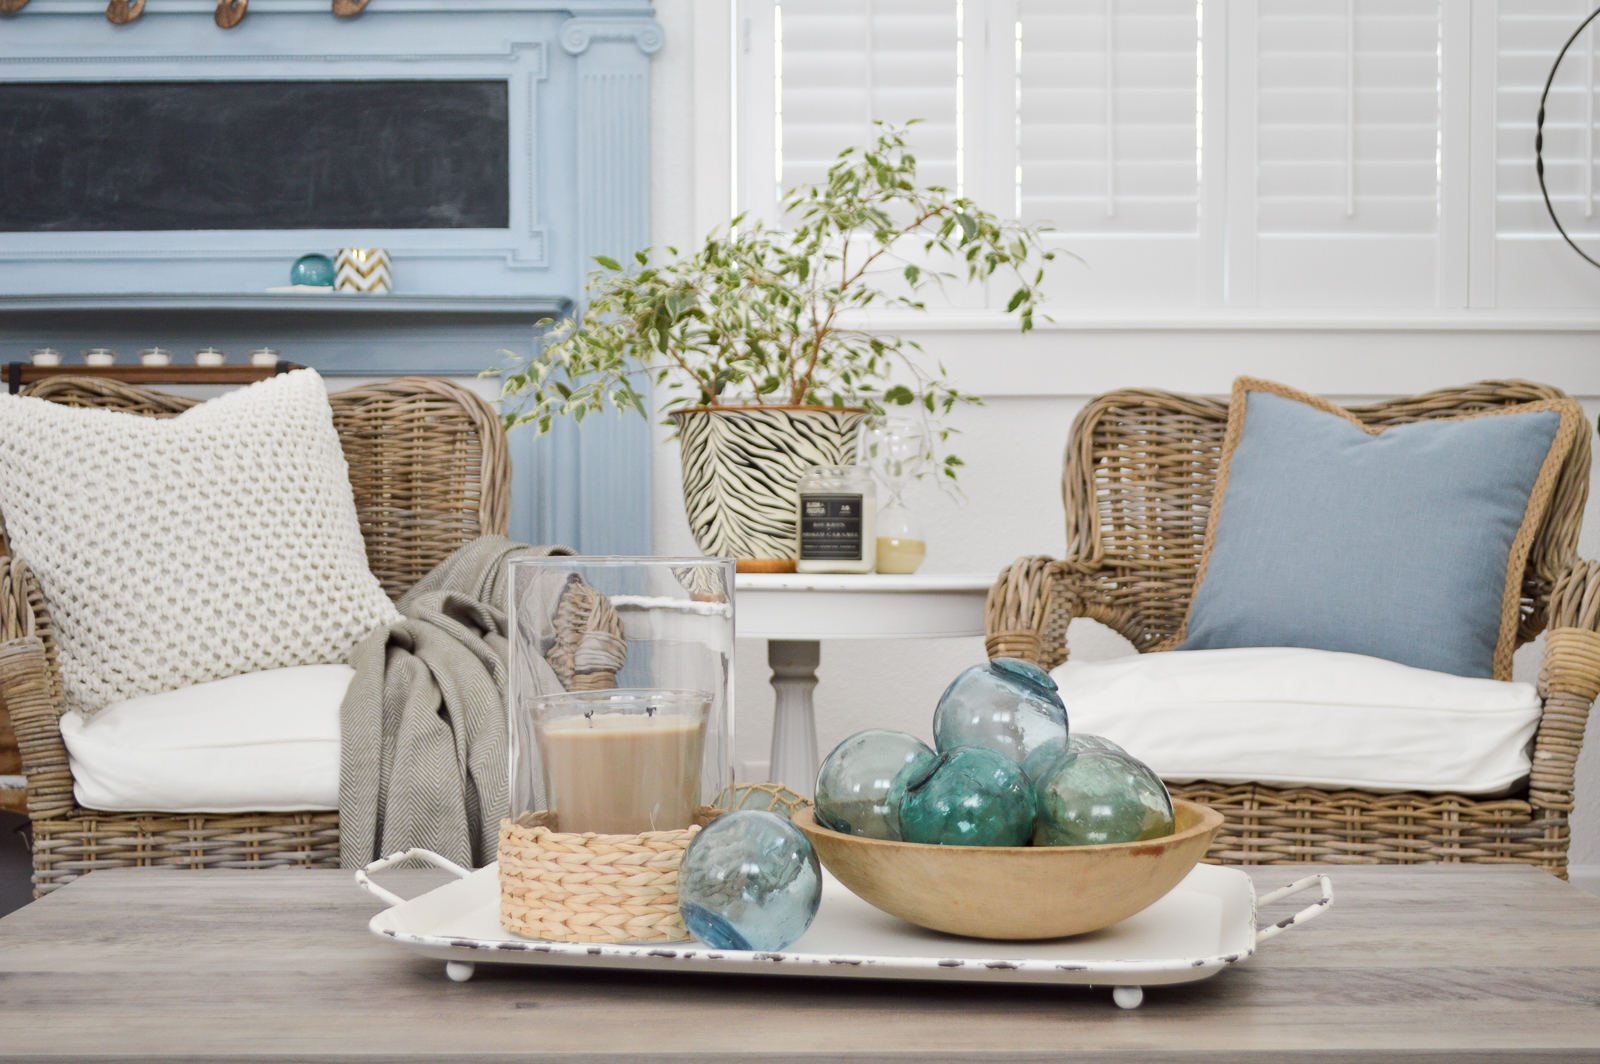 New Home Decorating Tips and Ideas - How to get that relaxed cottage farmhouse style. Great room/living room, take two. #sponsored with Better Homes & Gardens